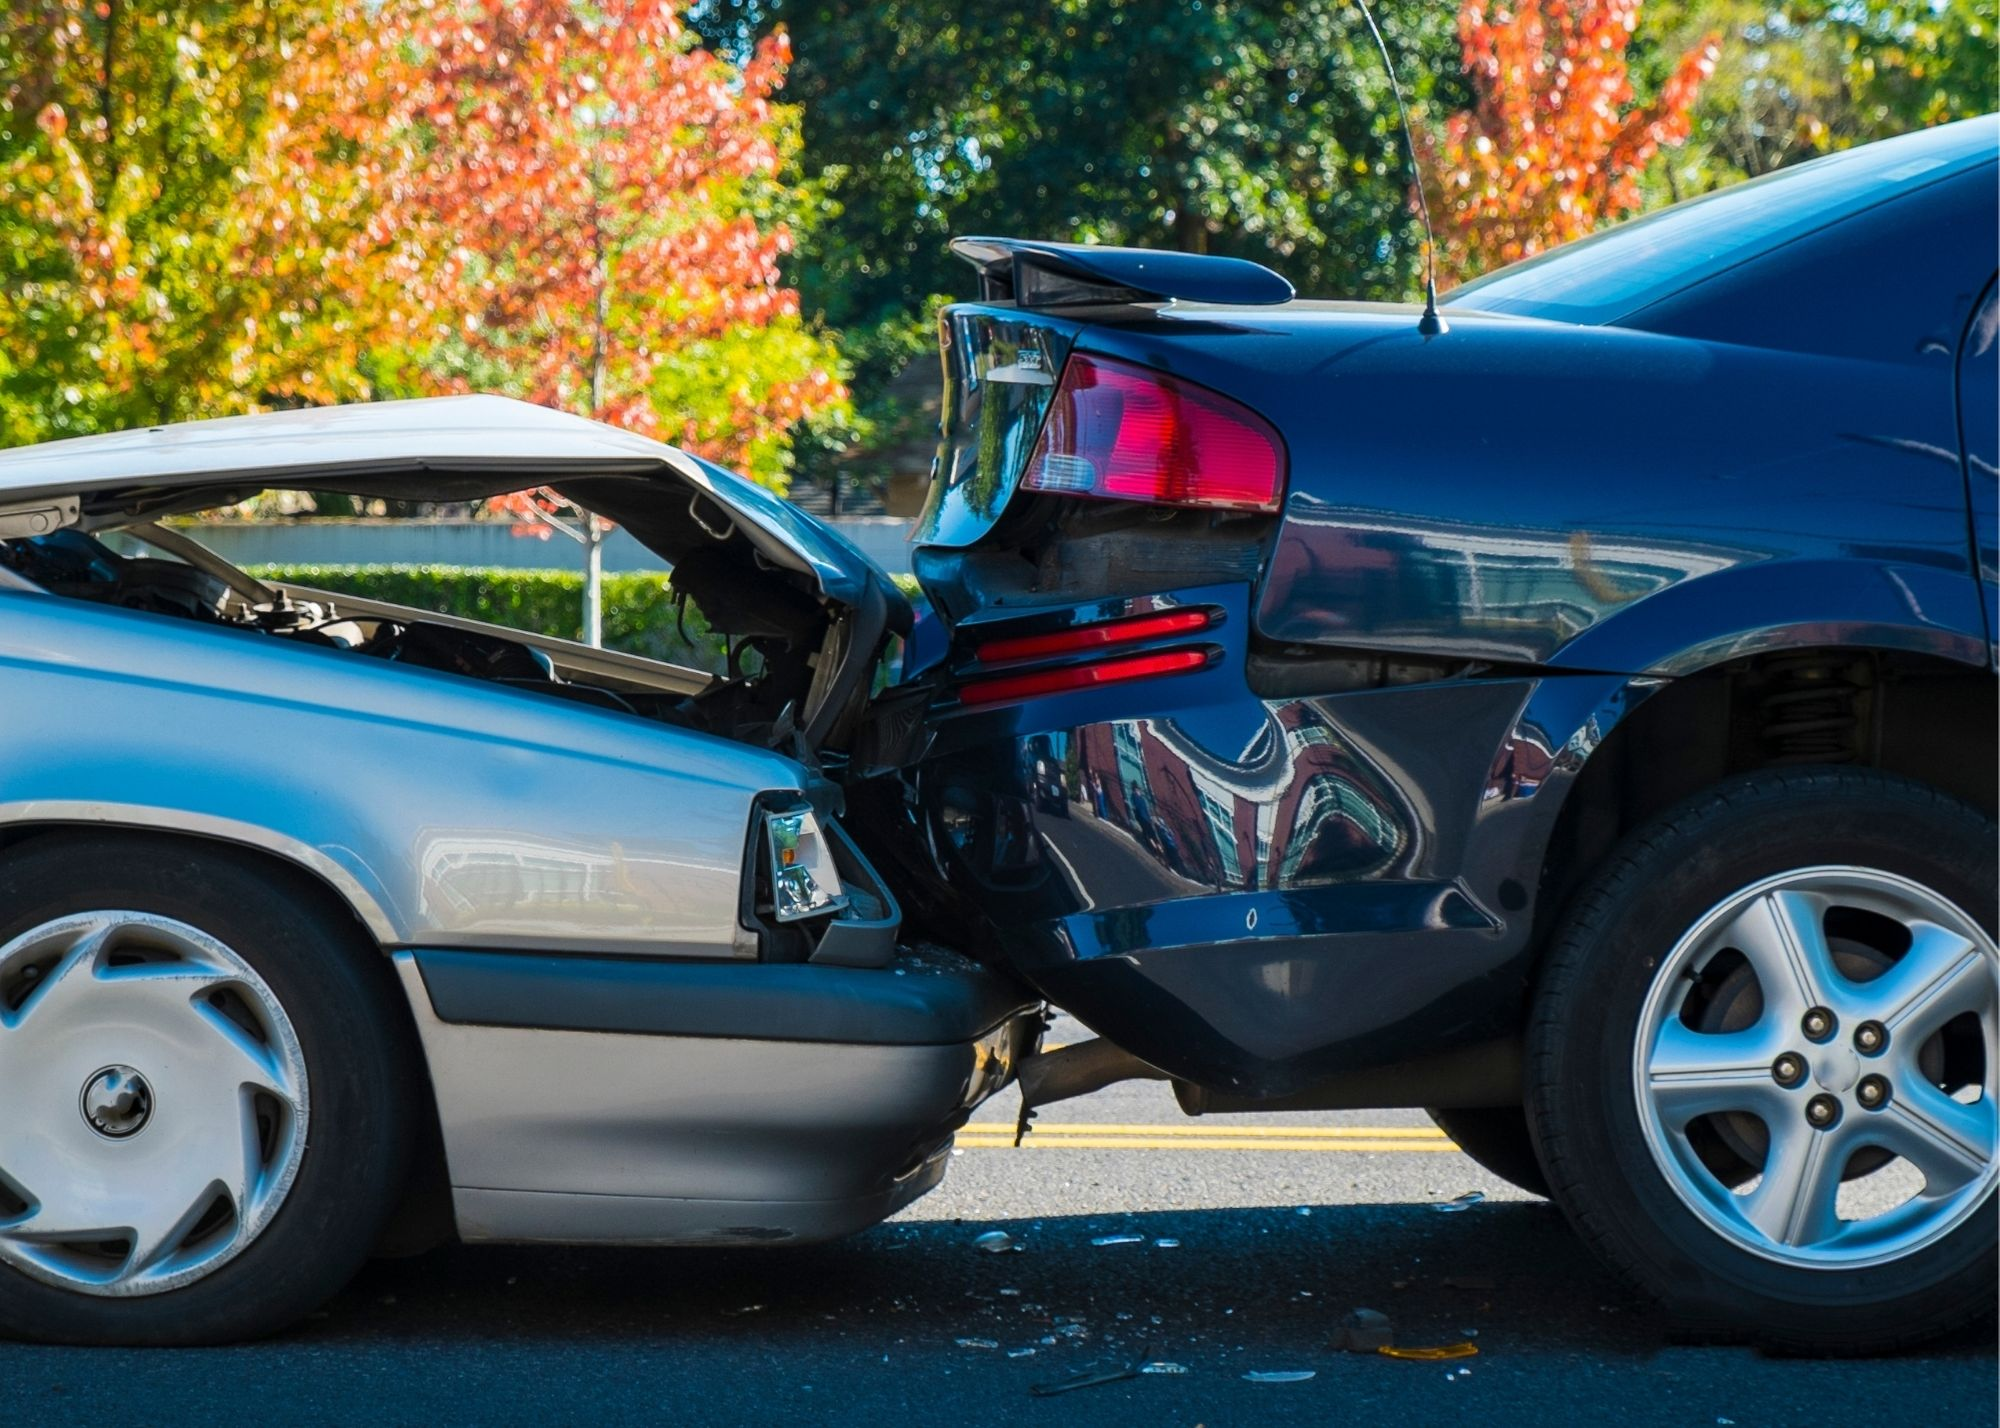 how do you know if you have to have sr22 insurance in Georgia